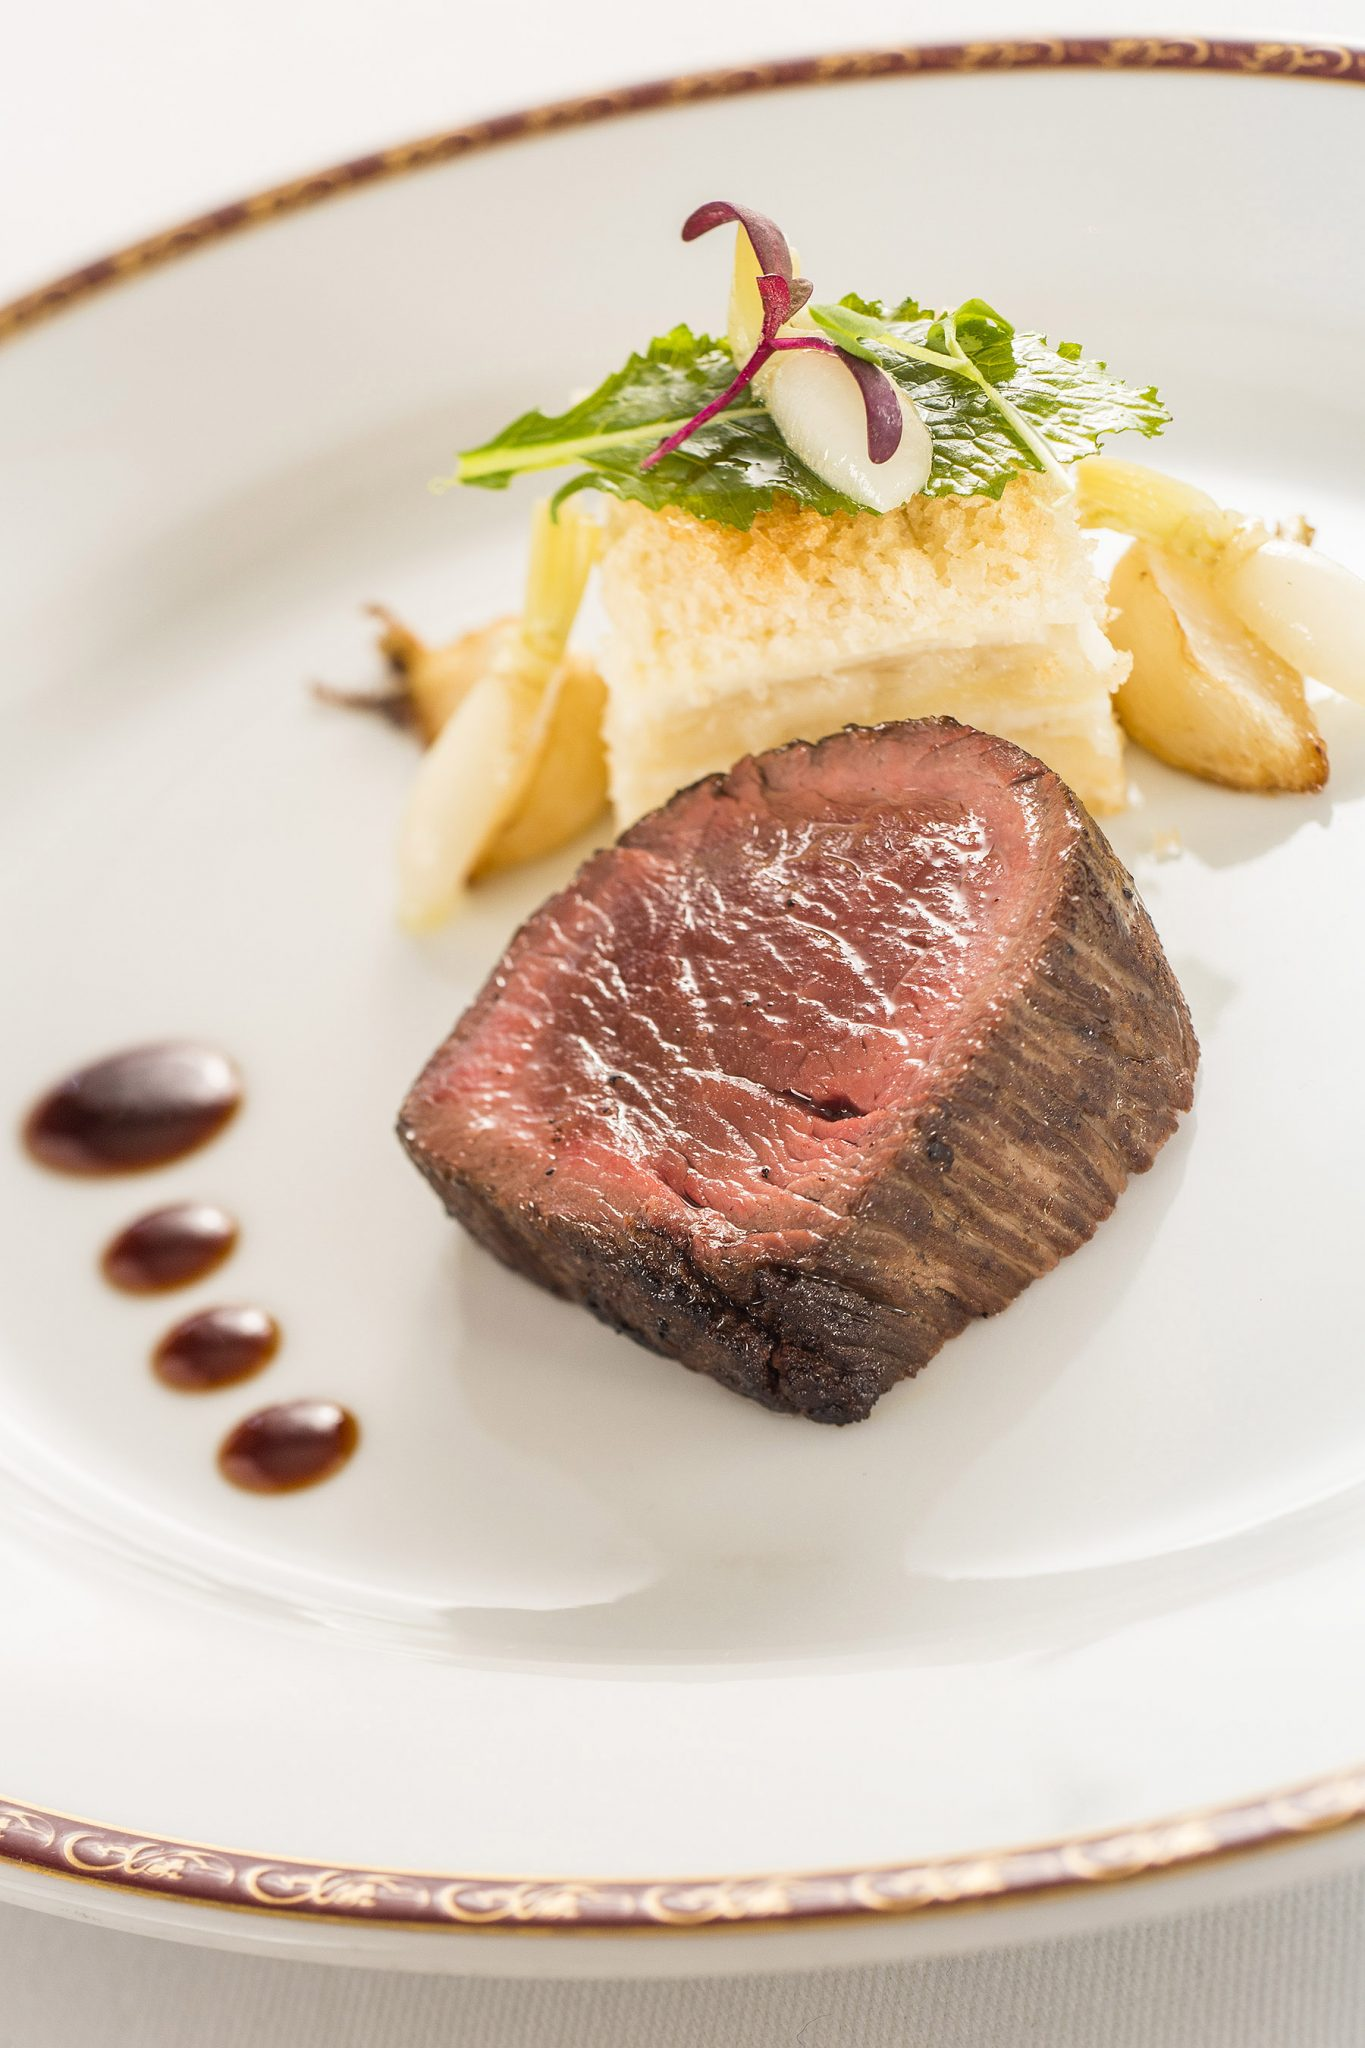 Disney Fantasy Dining: Where to Eat on Your Disney Cruise, tips featured by top US Disney blogger, Marcie and the Mouse: Kobe beef with turnip and potato gratin, served with thyme jus. Chef Arnaud Lallement, Remy (Matt Stroshane, photographer)